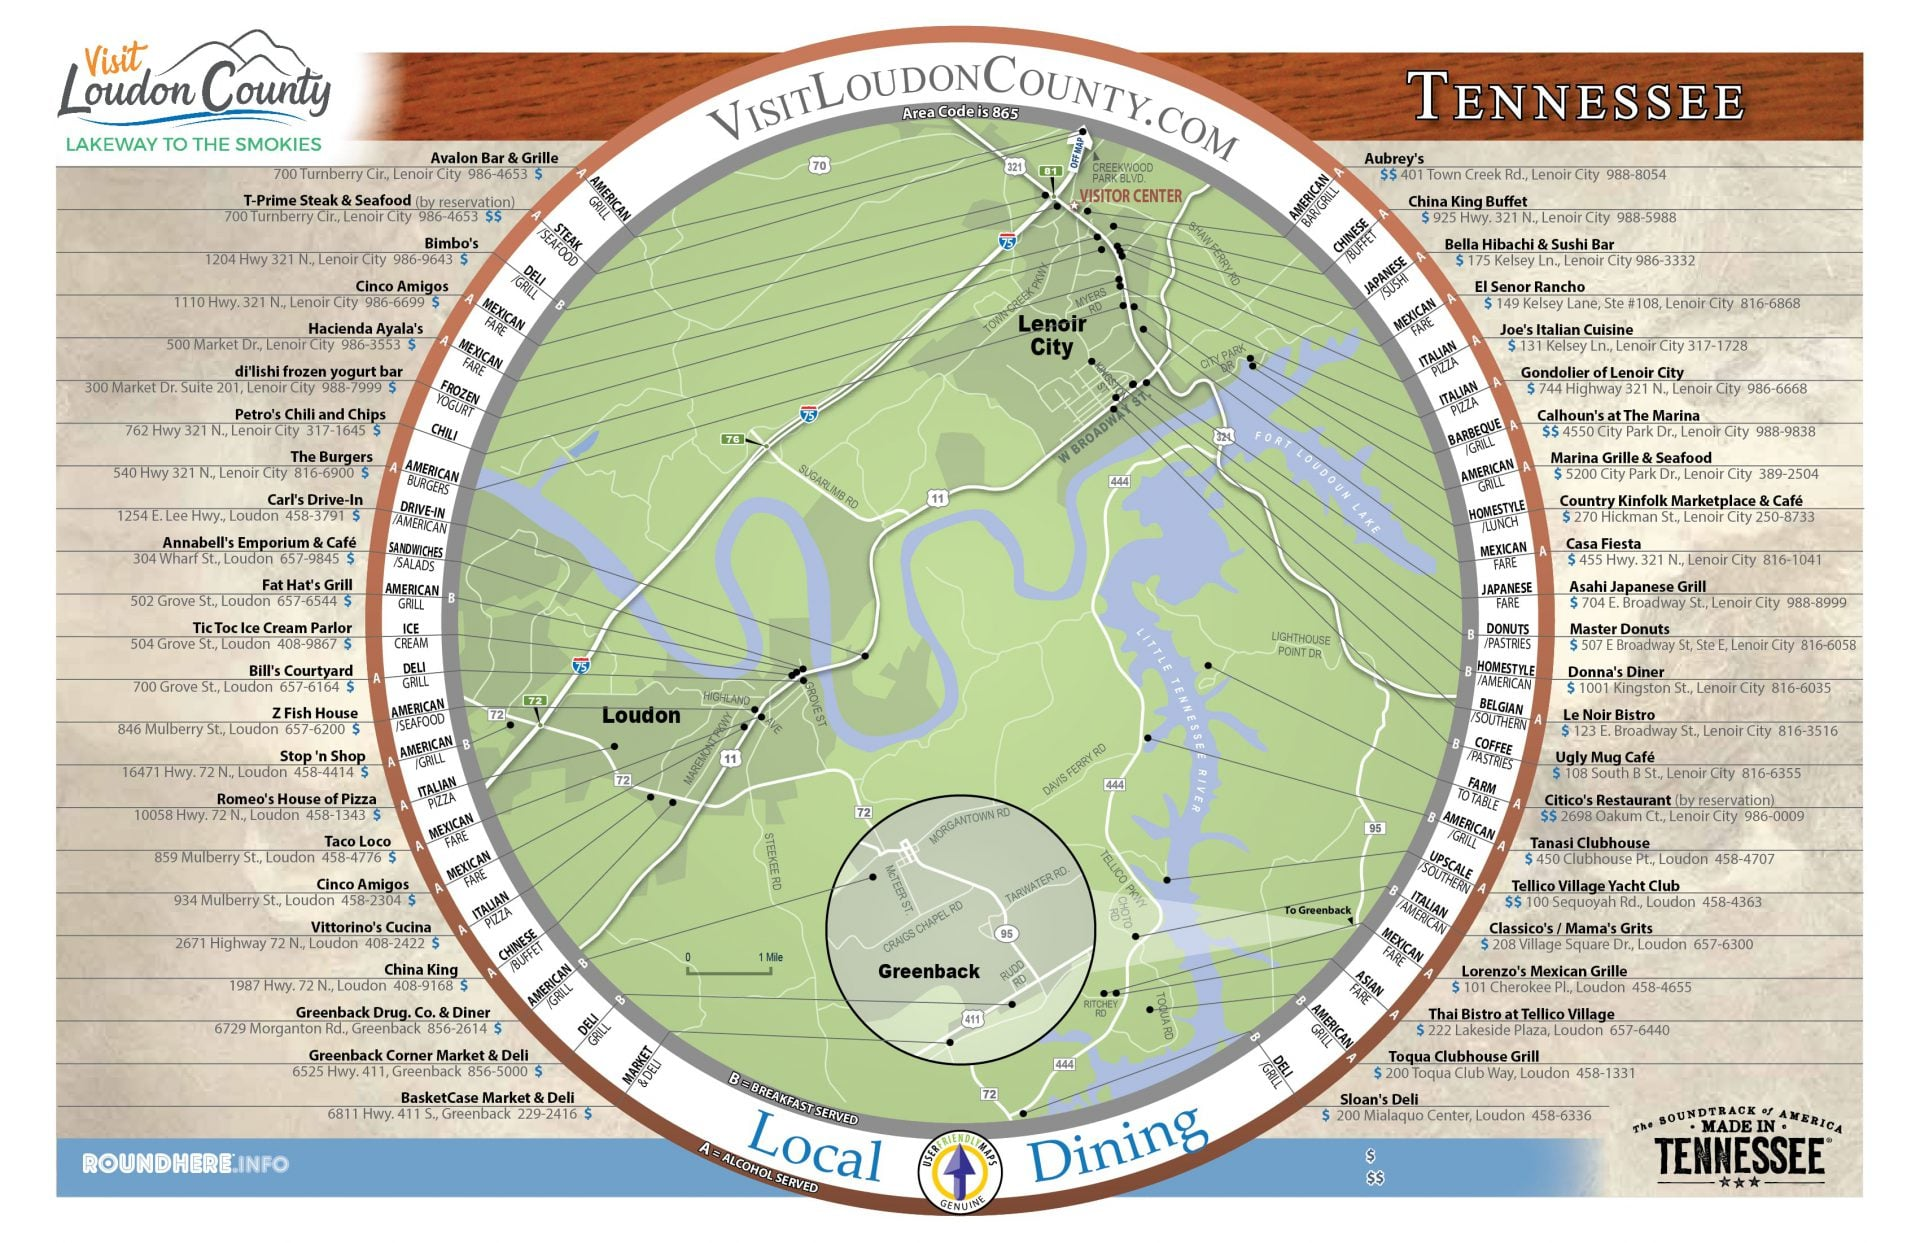 Loudon County RoundHere